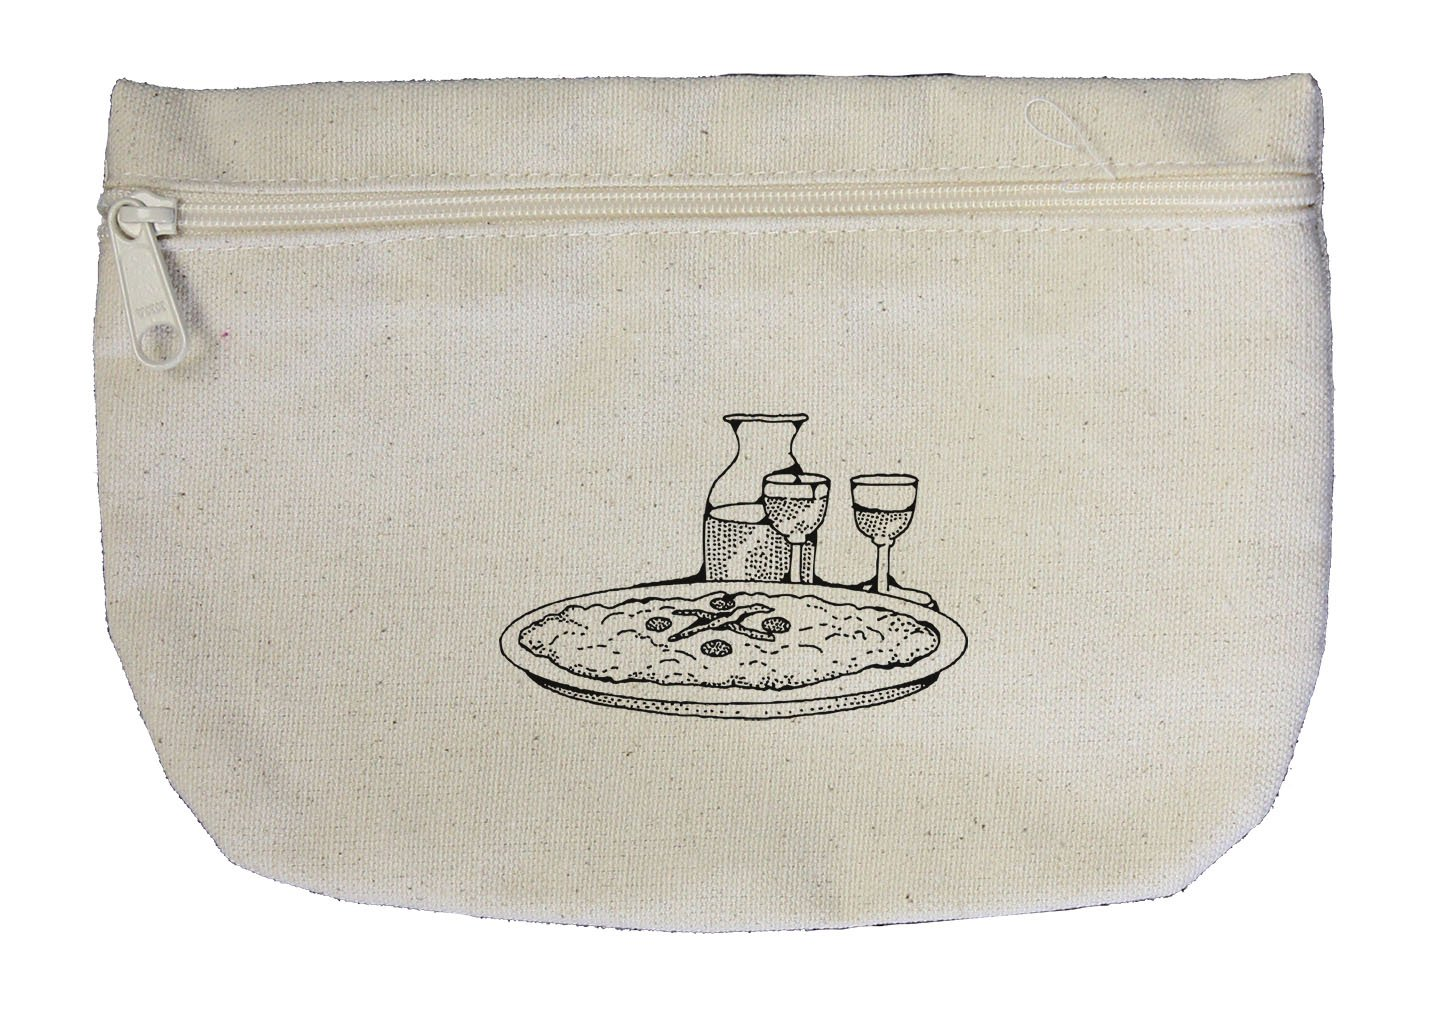 a45a27cd9d77 hot sale 2017 Pizza And Wine Vintage Look Canvas Pouch with Zipper ...